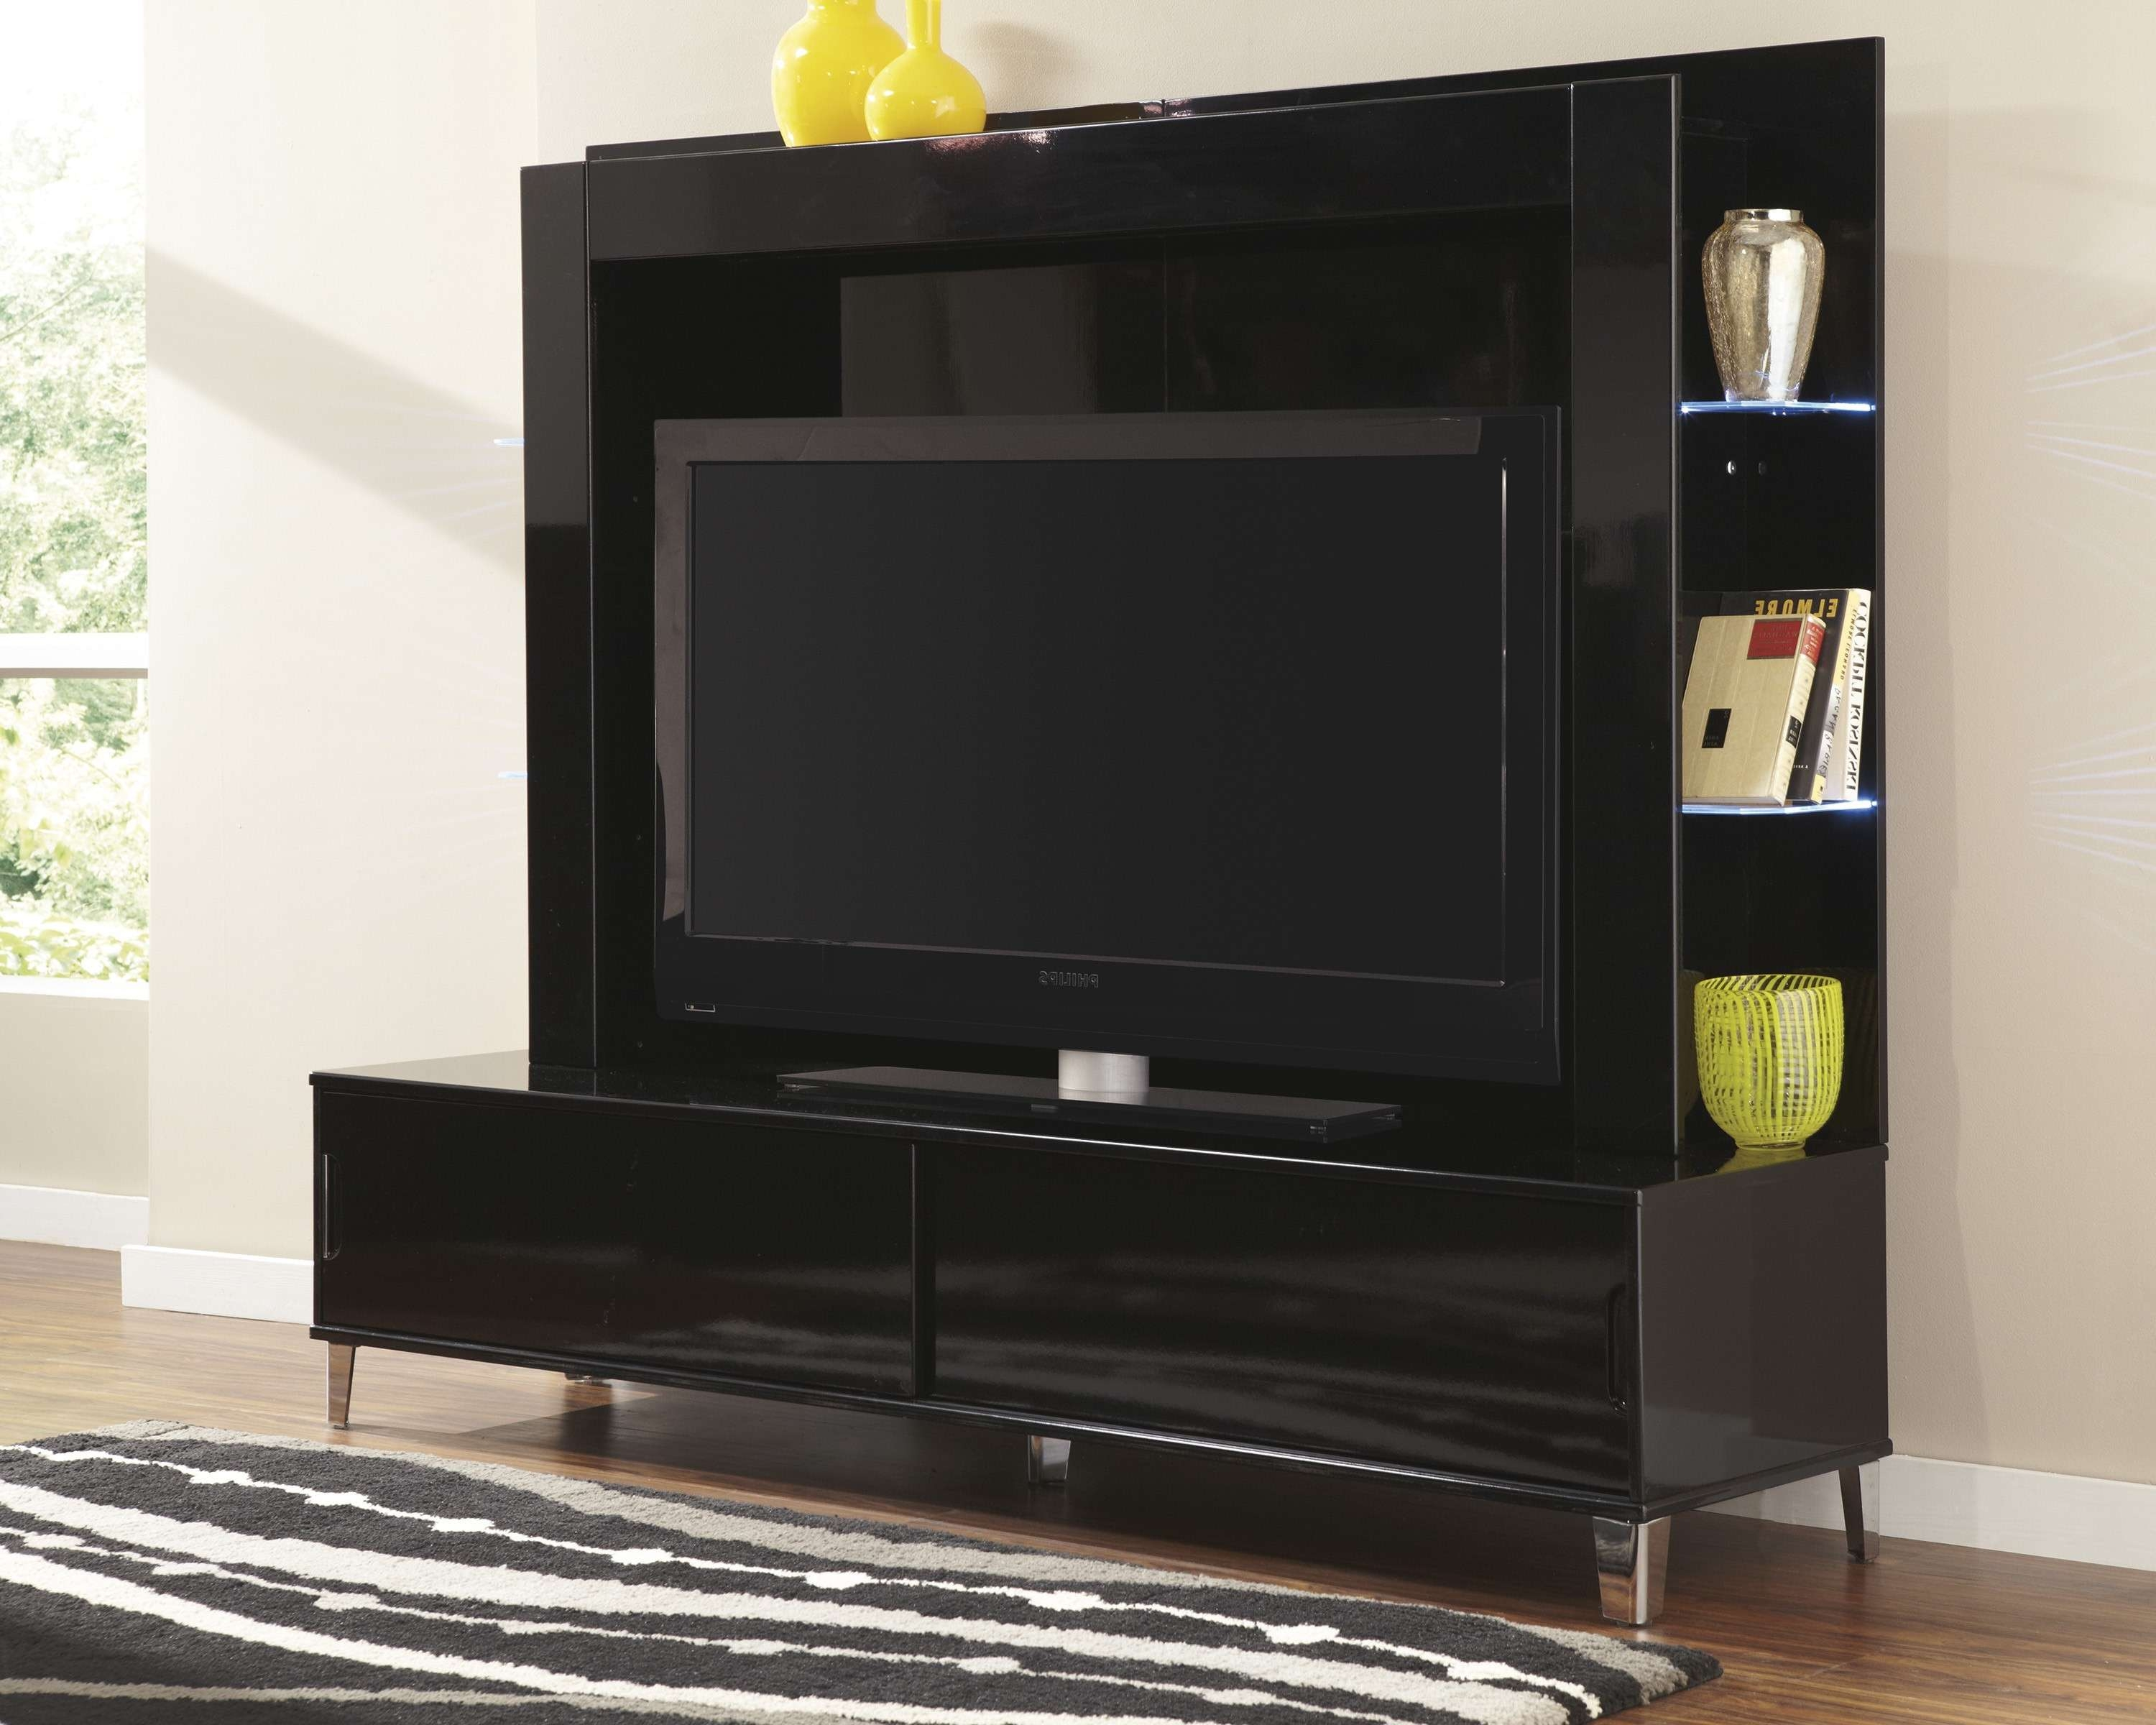 Bedrooms : Fascinating Flat Screen Tv Mount Stand Cream Wall Pertaining To Black Wood Corner Tv Stands (View 14 of 15)